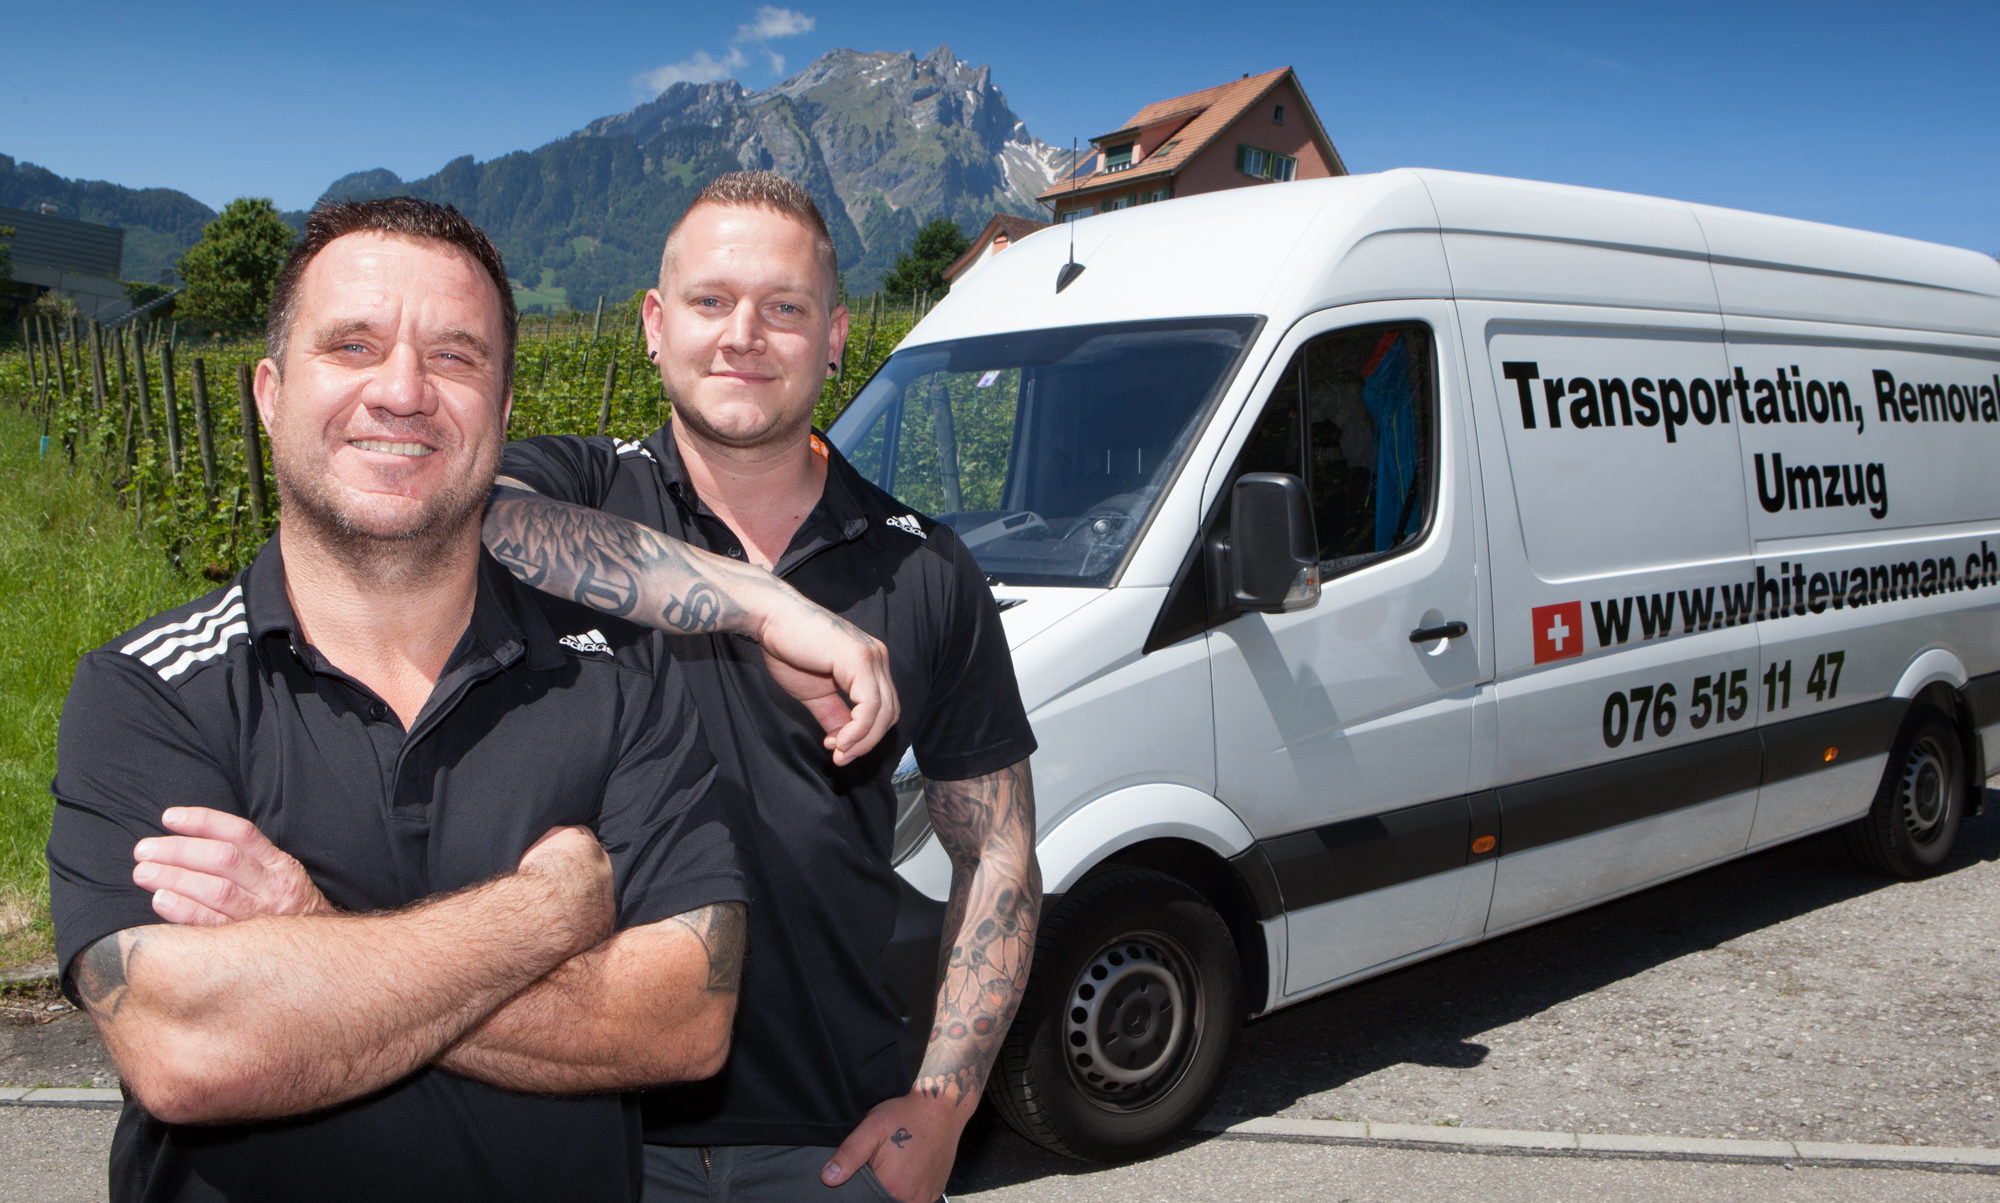 White Van Man Luzern. Serving Switzerland, UK and Europe